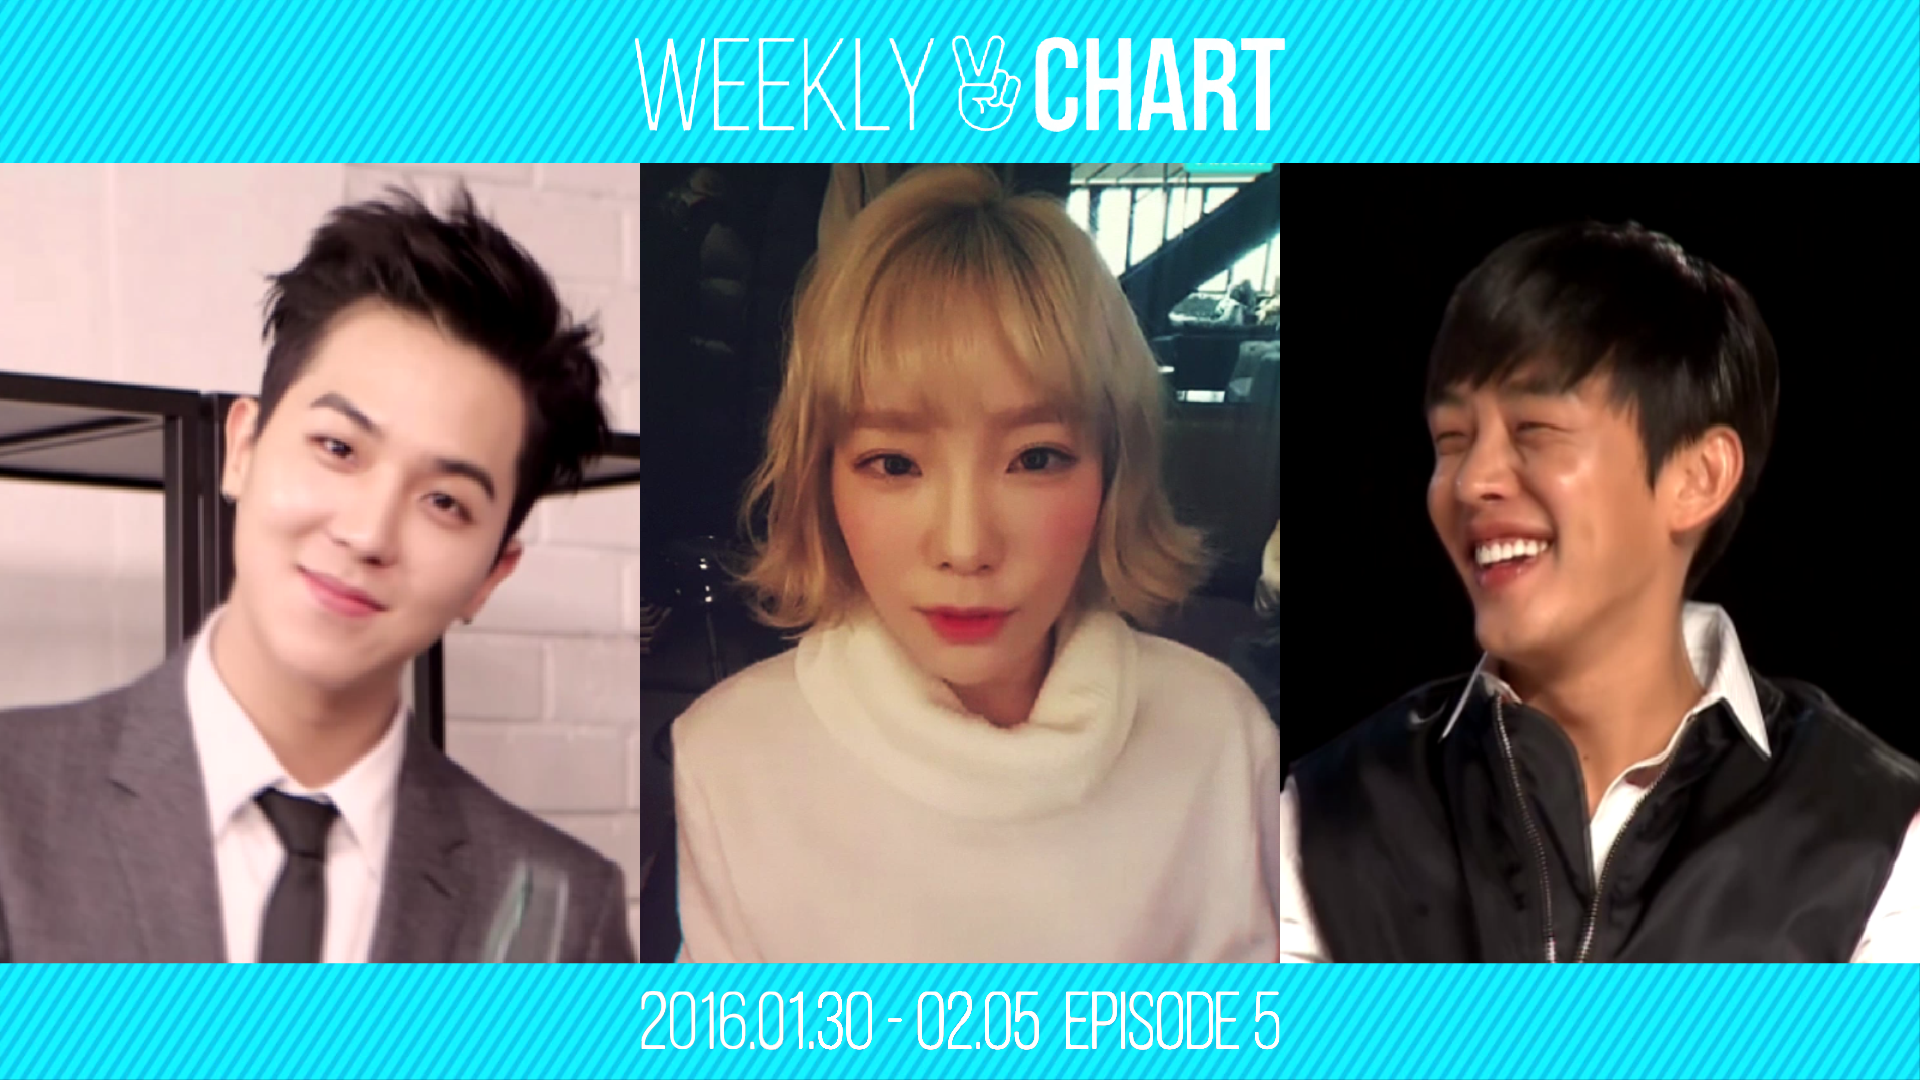 [WEEKLY V CHART] 2016.1.30 - 2.5 EPISODE